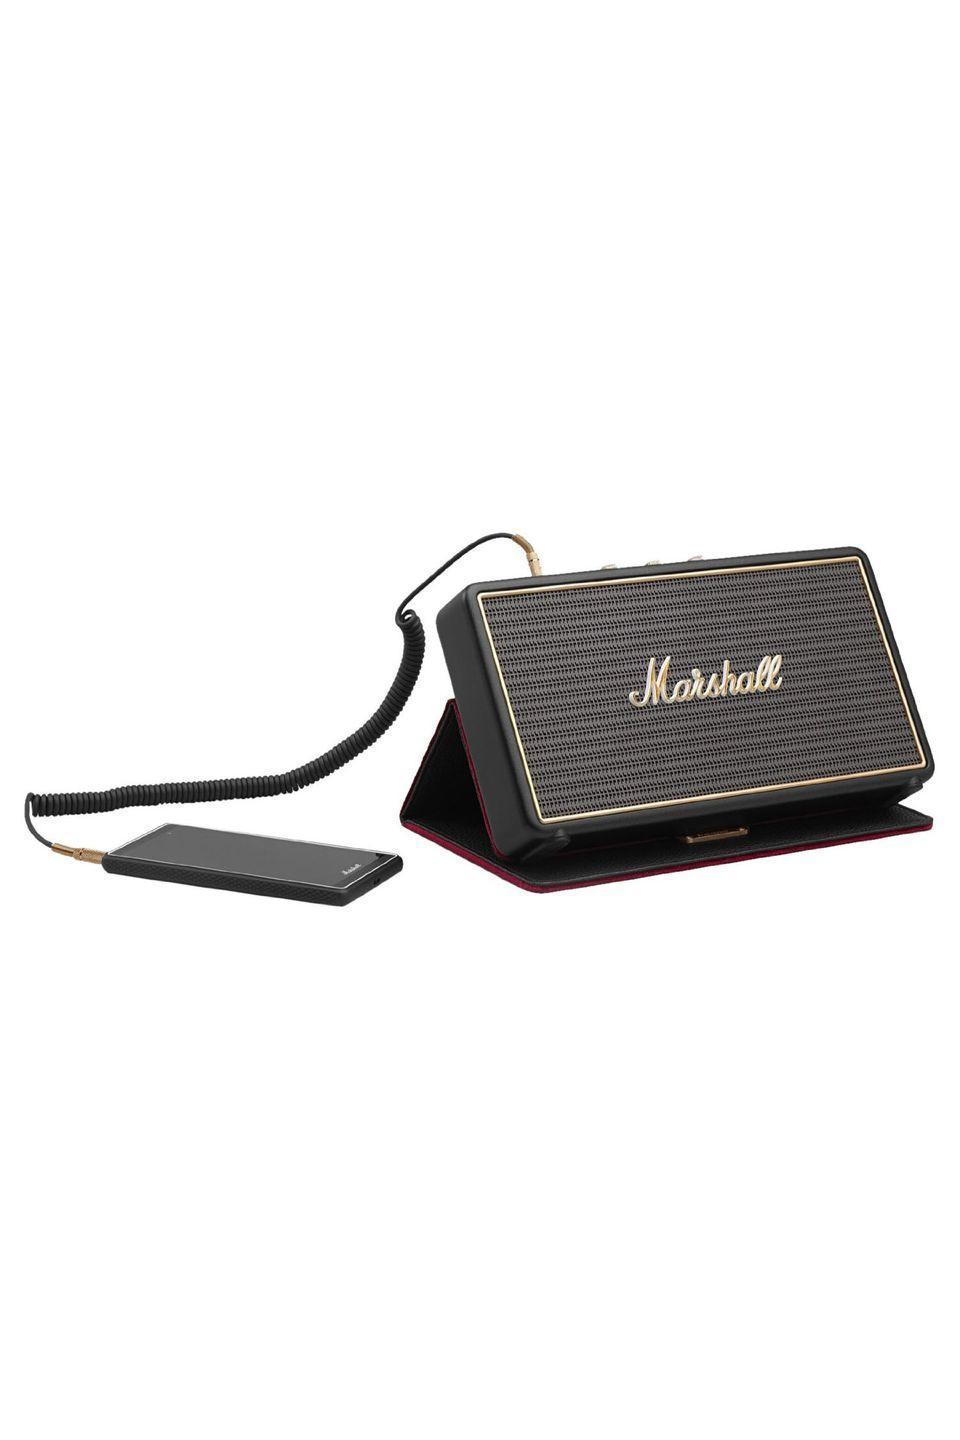 """<p><a rel=""""nofollow noopener"""" href=""""https://www.amazon.com/Marshall-Stockwell-Portable-Bluetooth-Speaker/dp/B0168SBIR6"""" target=""""_blank"""" data-ylk=""""slk:BUY NOW"""" class=""""link rapid-noclick-resp"""">BUY NOW</a></p><p><strong><em>$139.85, Amazon</em></strong></p><p>Music lovers can appreciate this pint-sized speaker with a surprisingly big sound. Play tunes via Bluetooth, or plug in a phone to charge while streaming Spotify.</p>"""